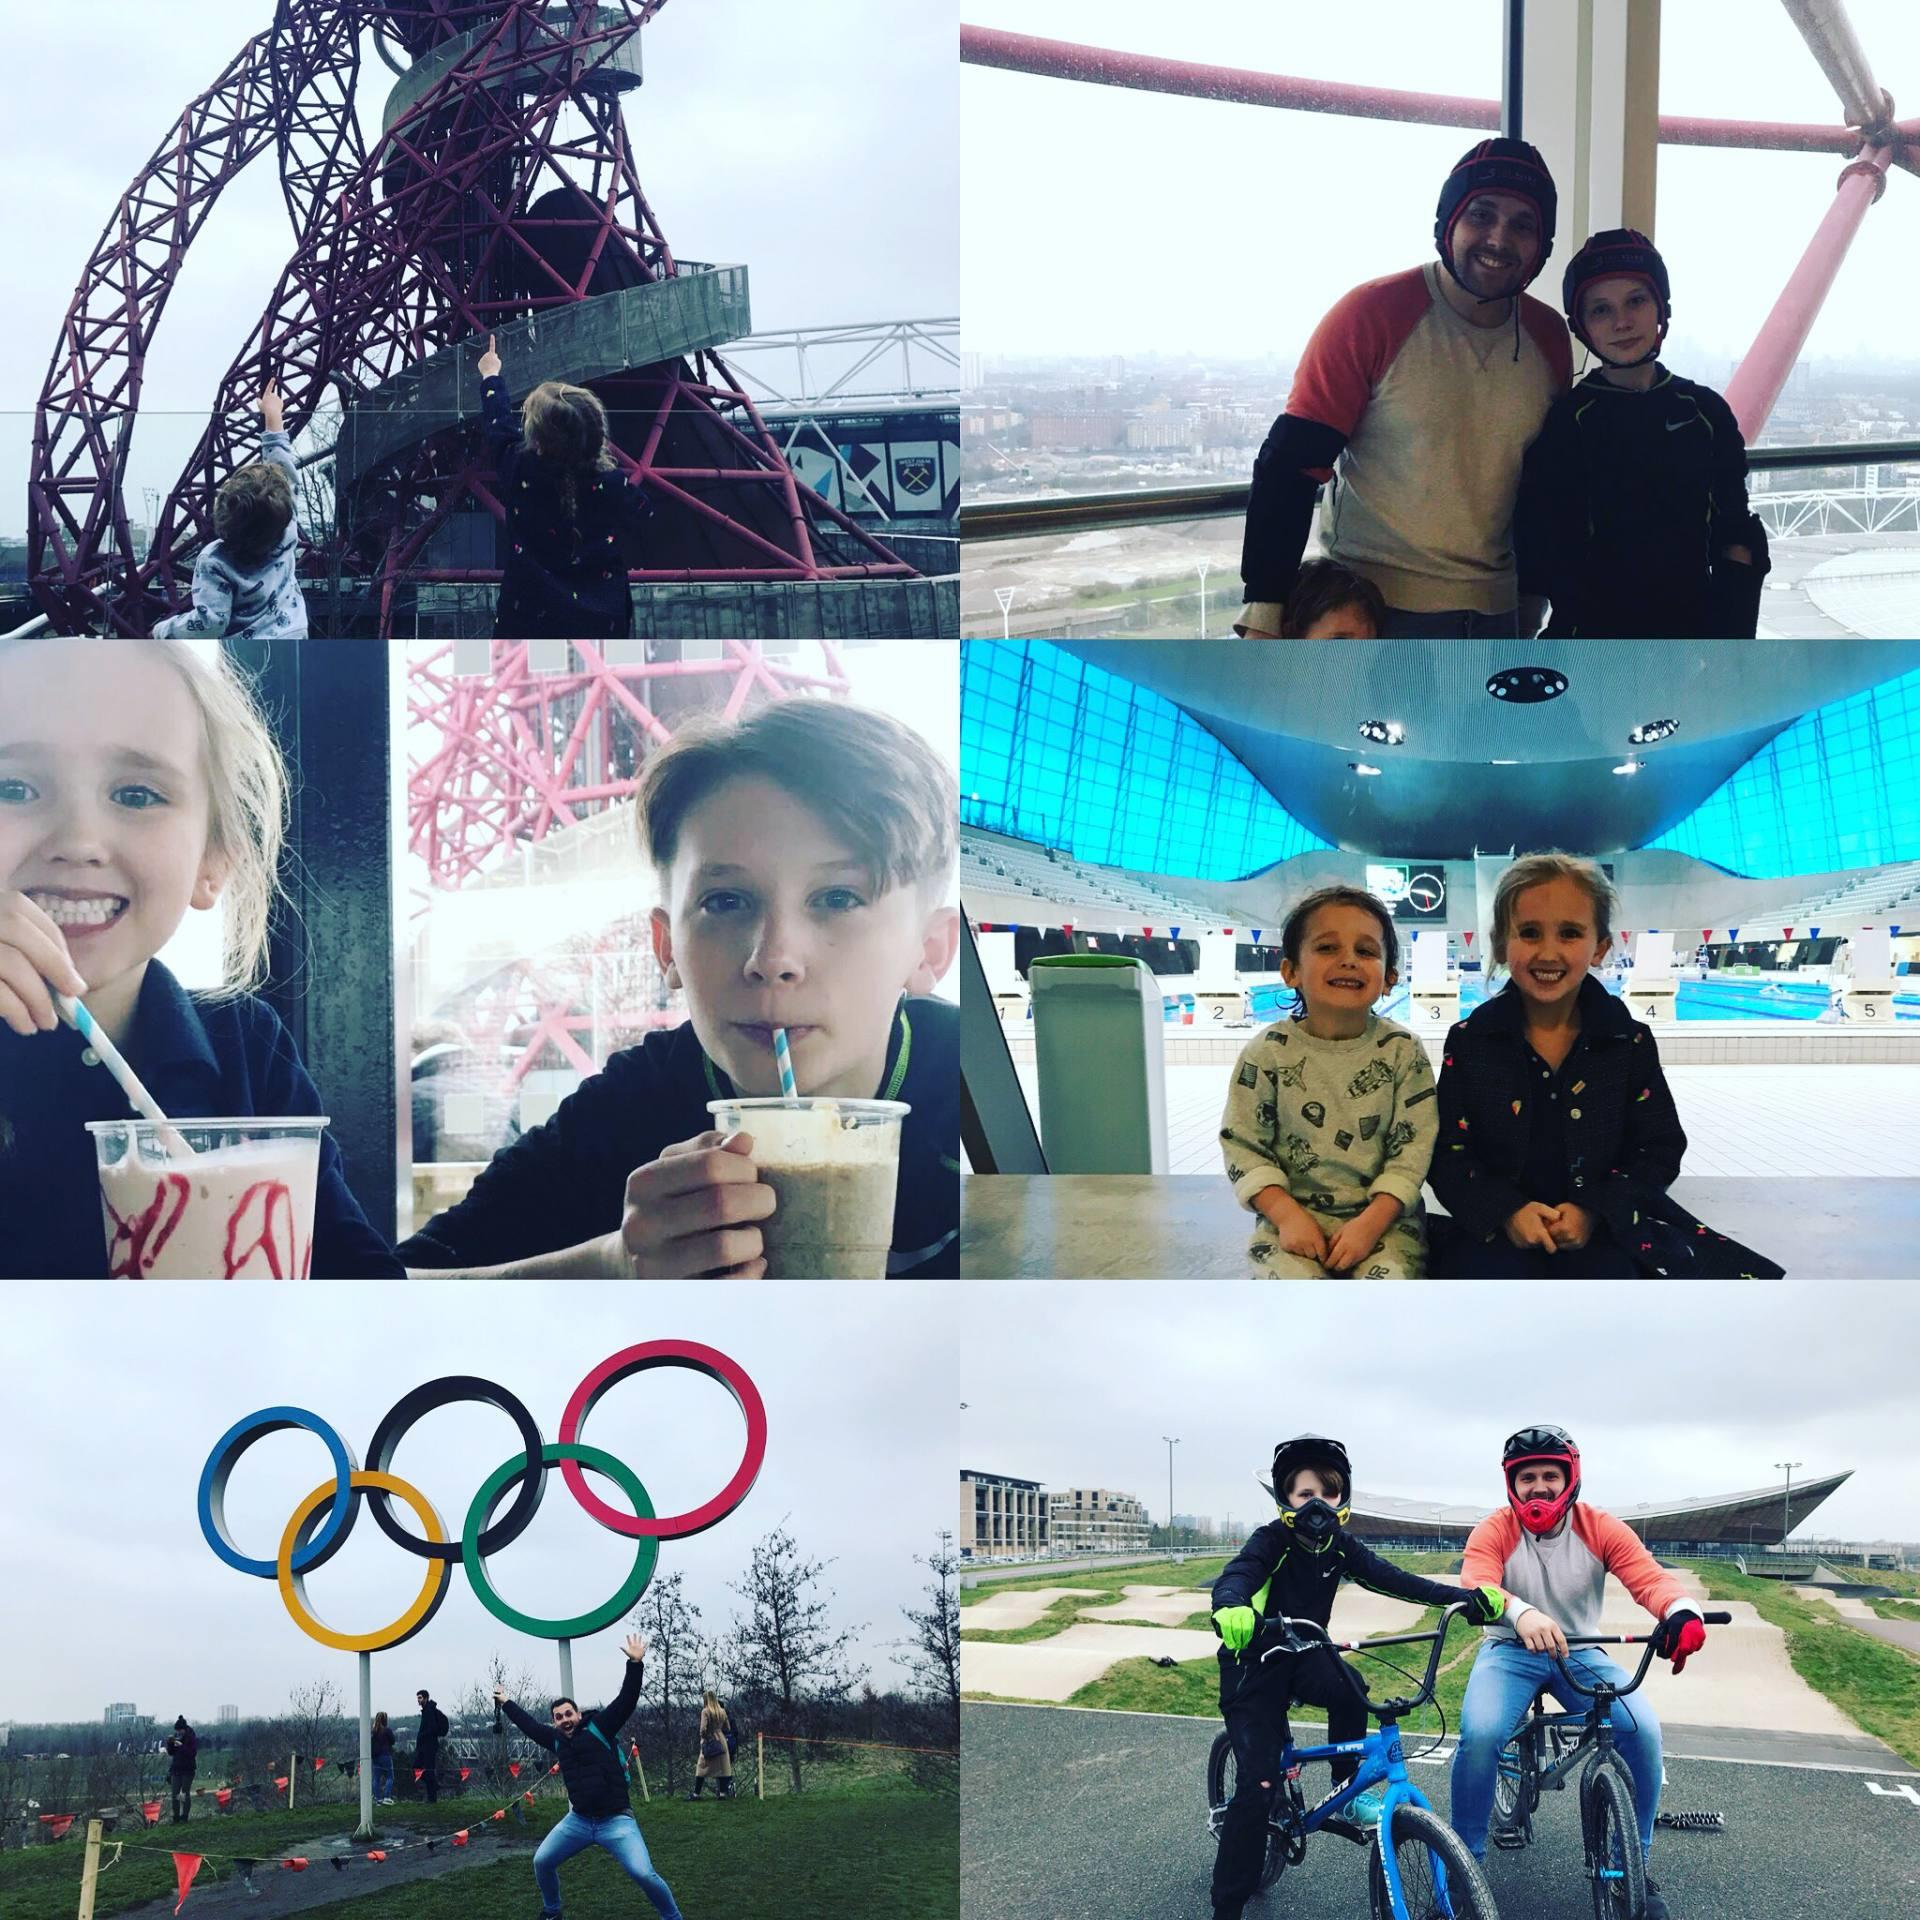 Why the Queen Elizabeth Olympic Park is Perfect for a Family Day Out, IMG 6601%, product-review%